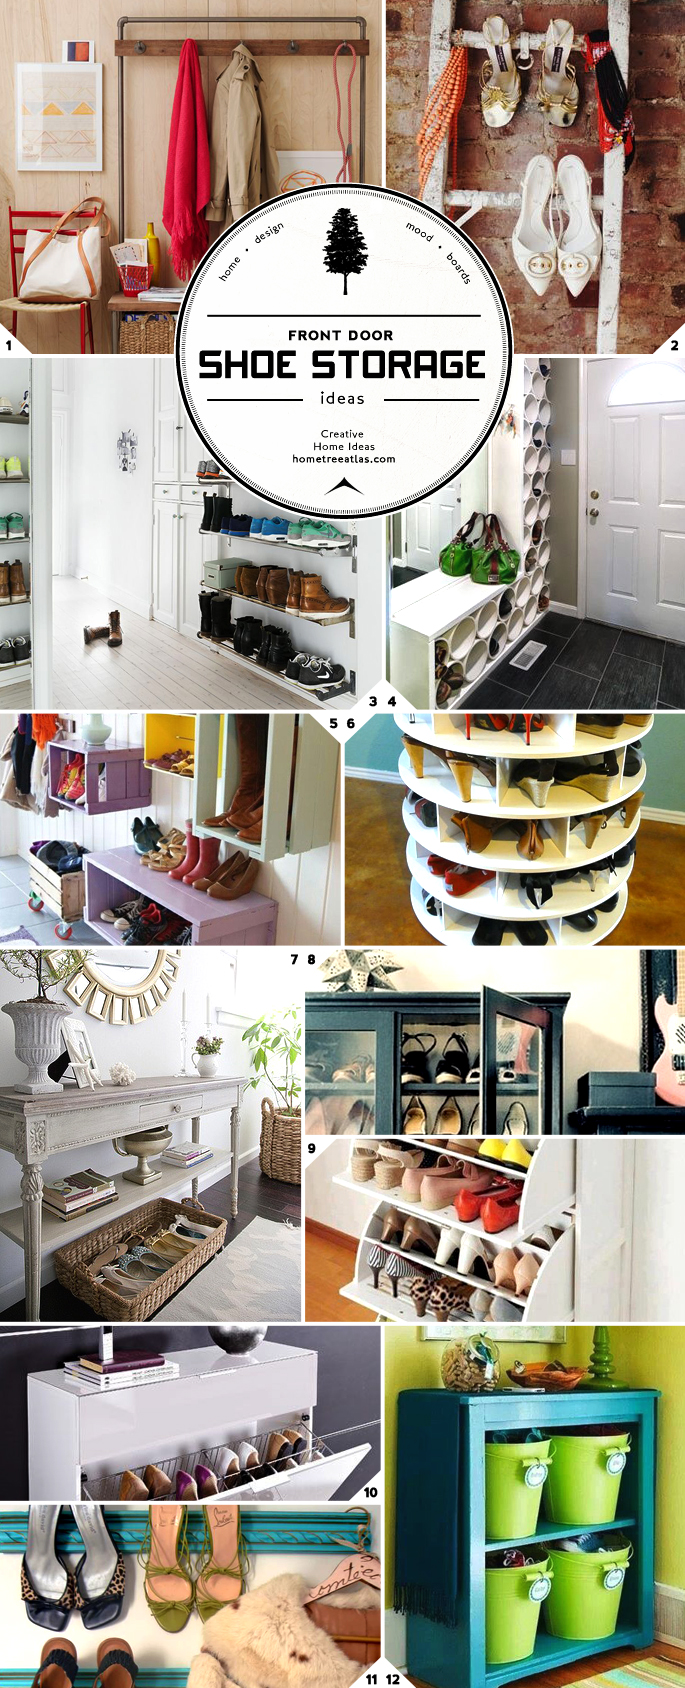 404 not found for Foyer shoe storage ideas